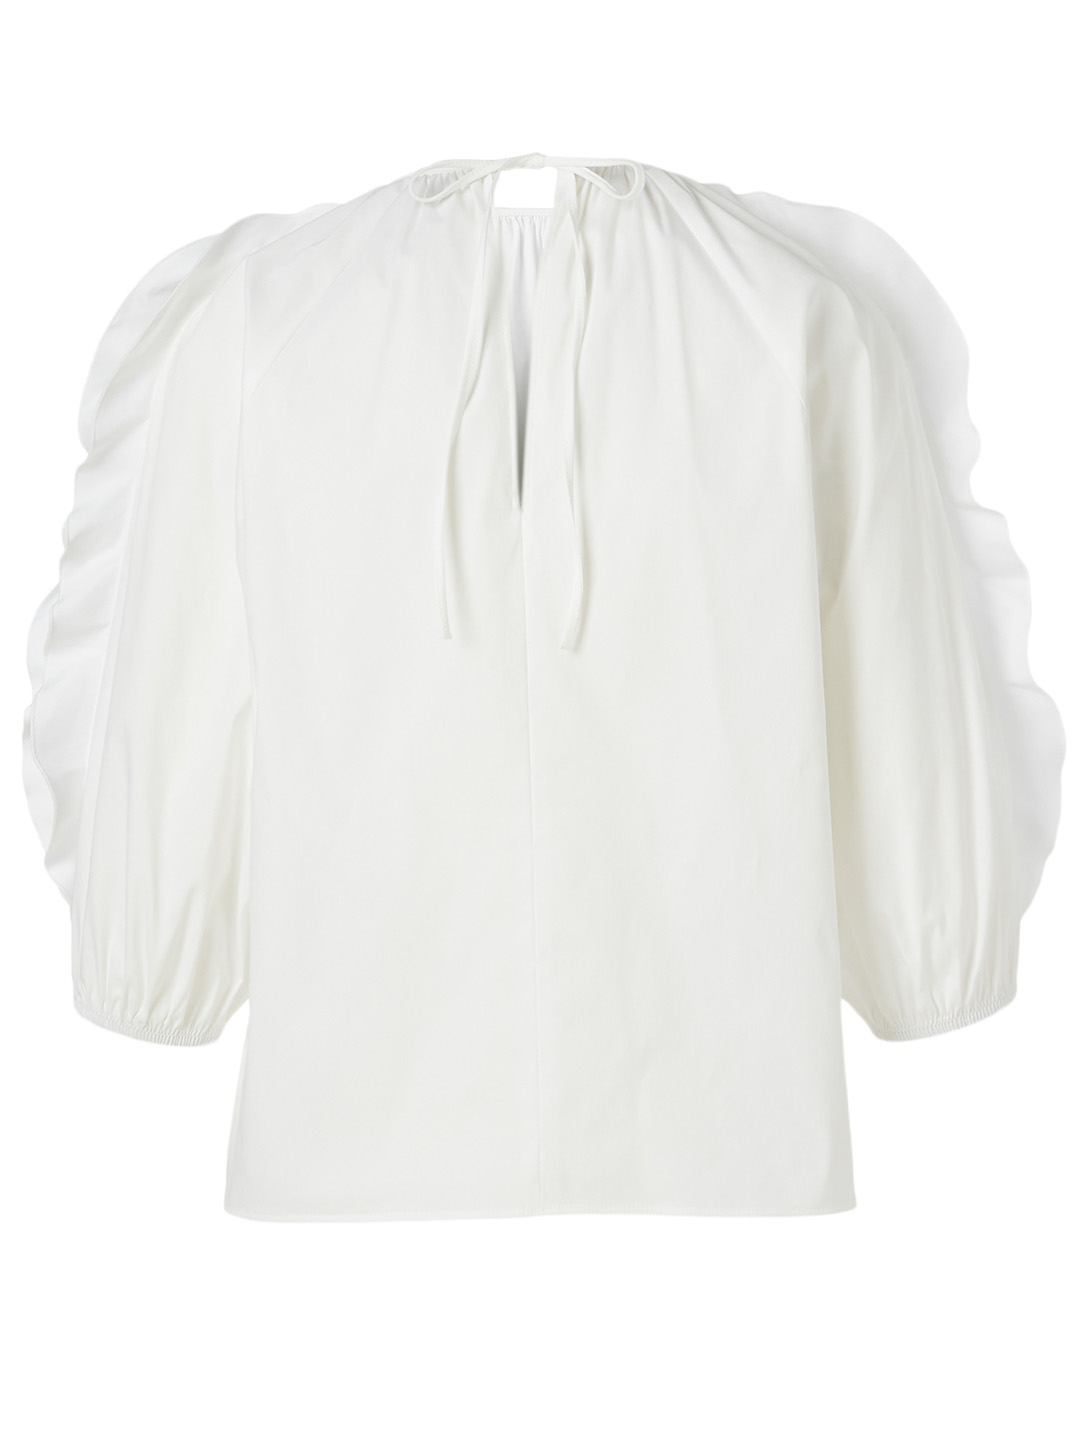 RED VALENTINO Cotton Poplin Ruffled Top Women's White